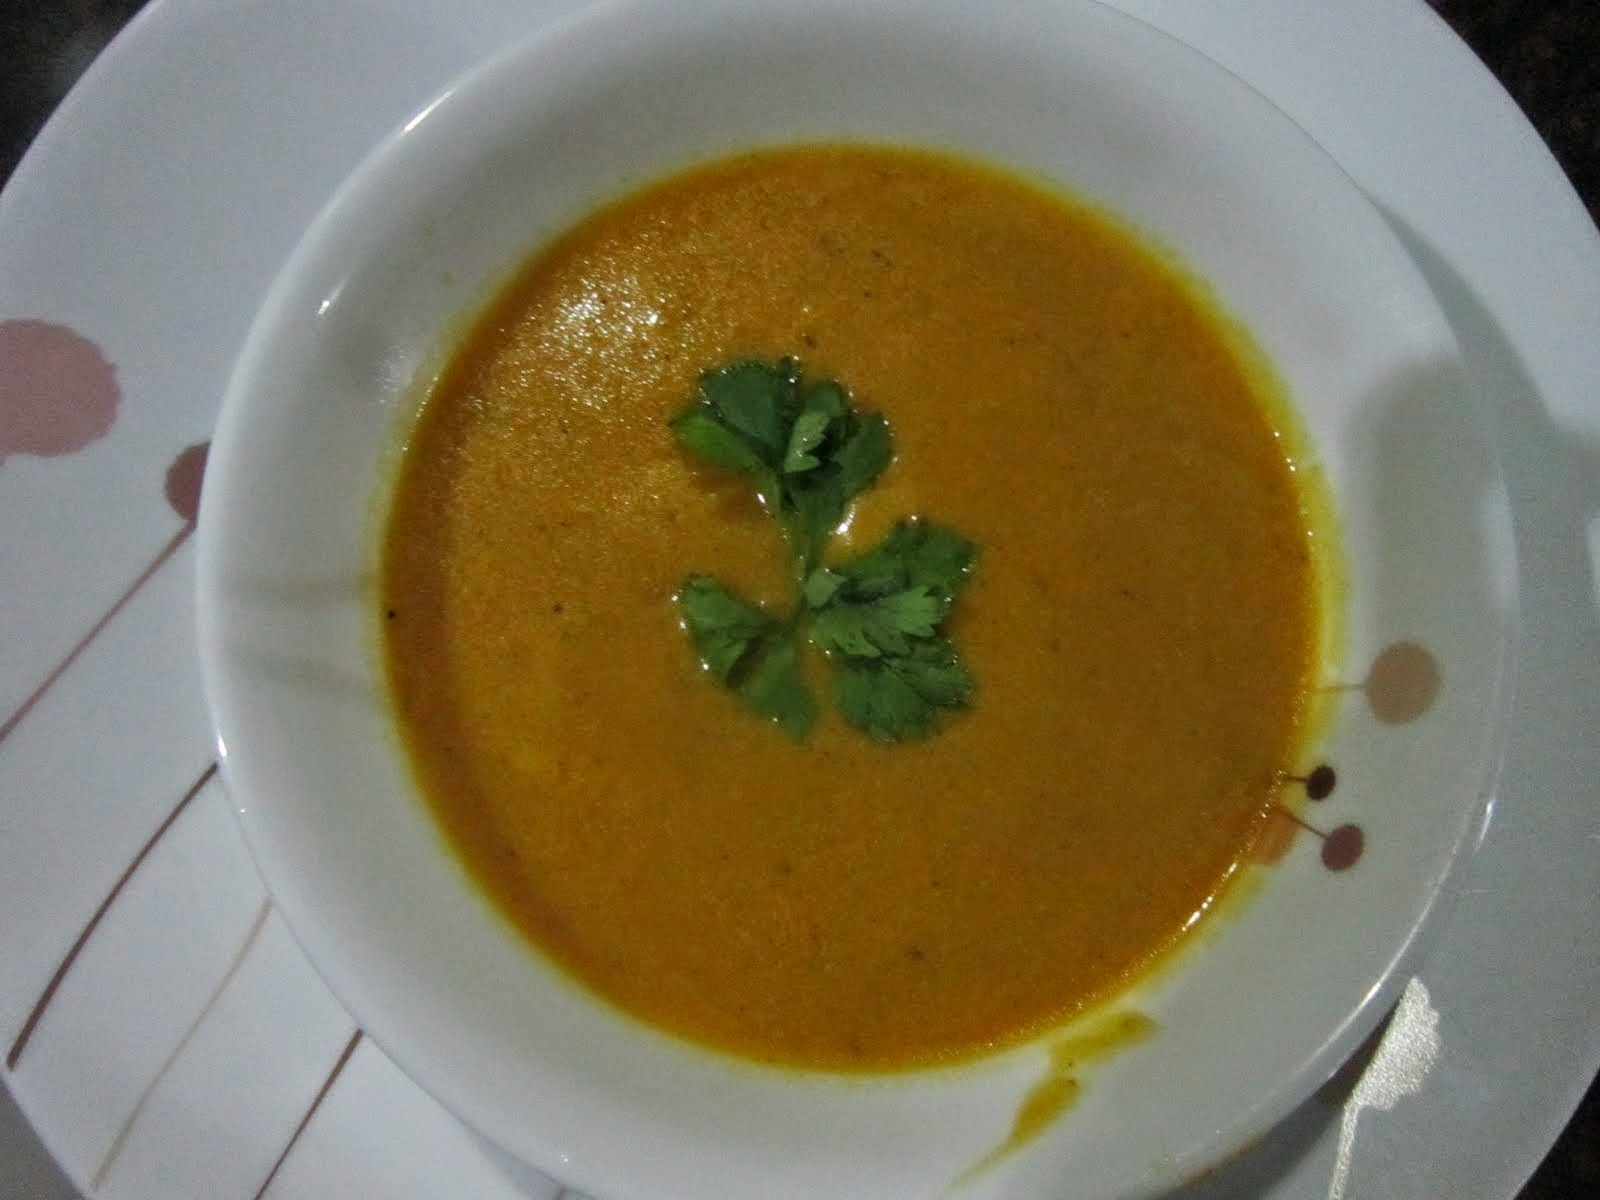 CREAMY COCO PUMPKIN SOUP - Using Alaska Crema